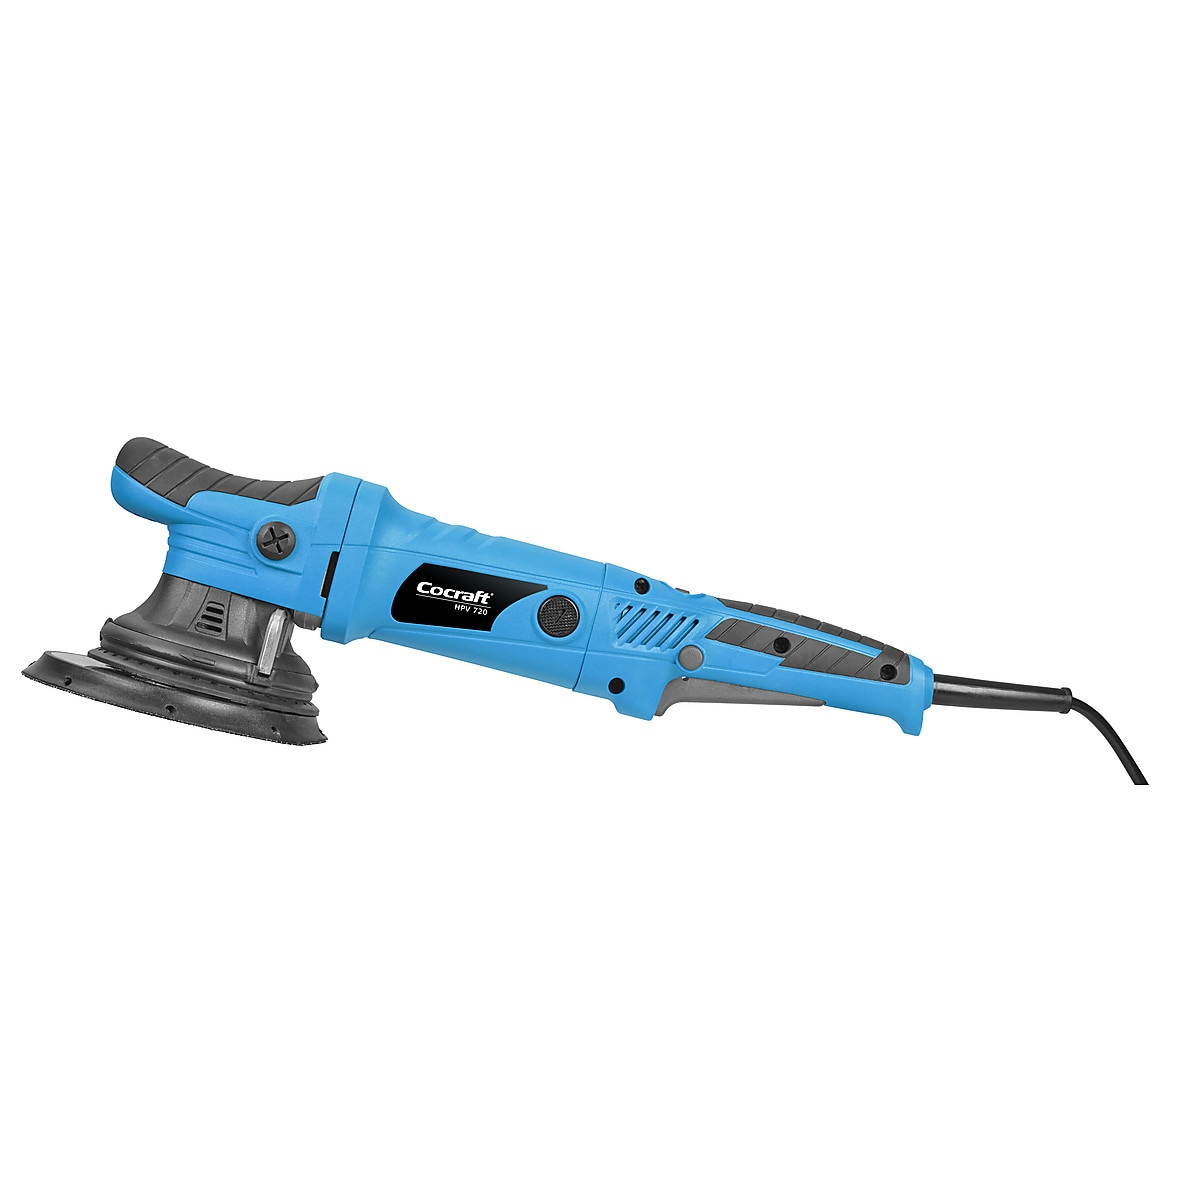 Cocraft HPV 720 Dual-Action Polisher